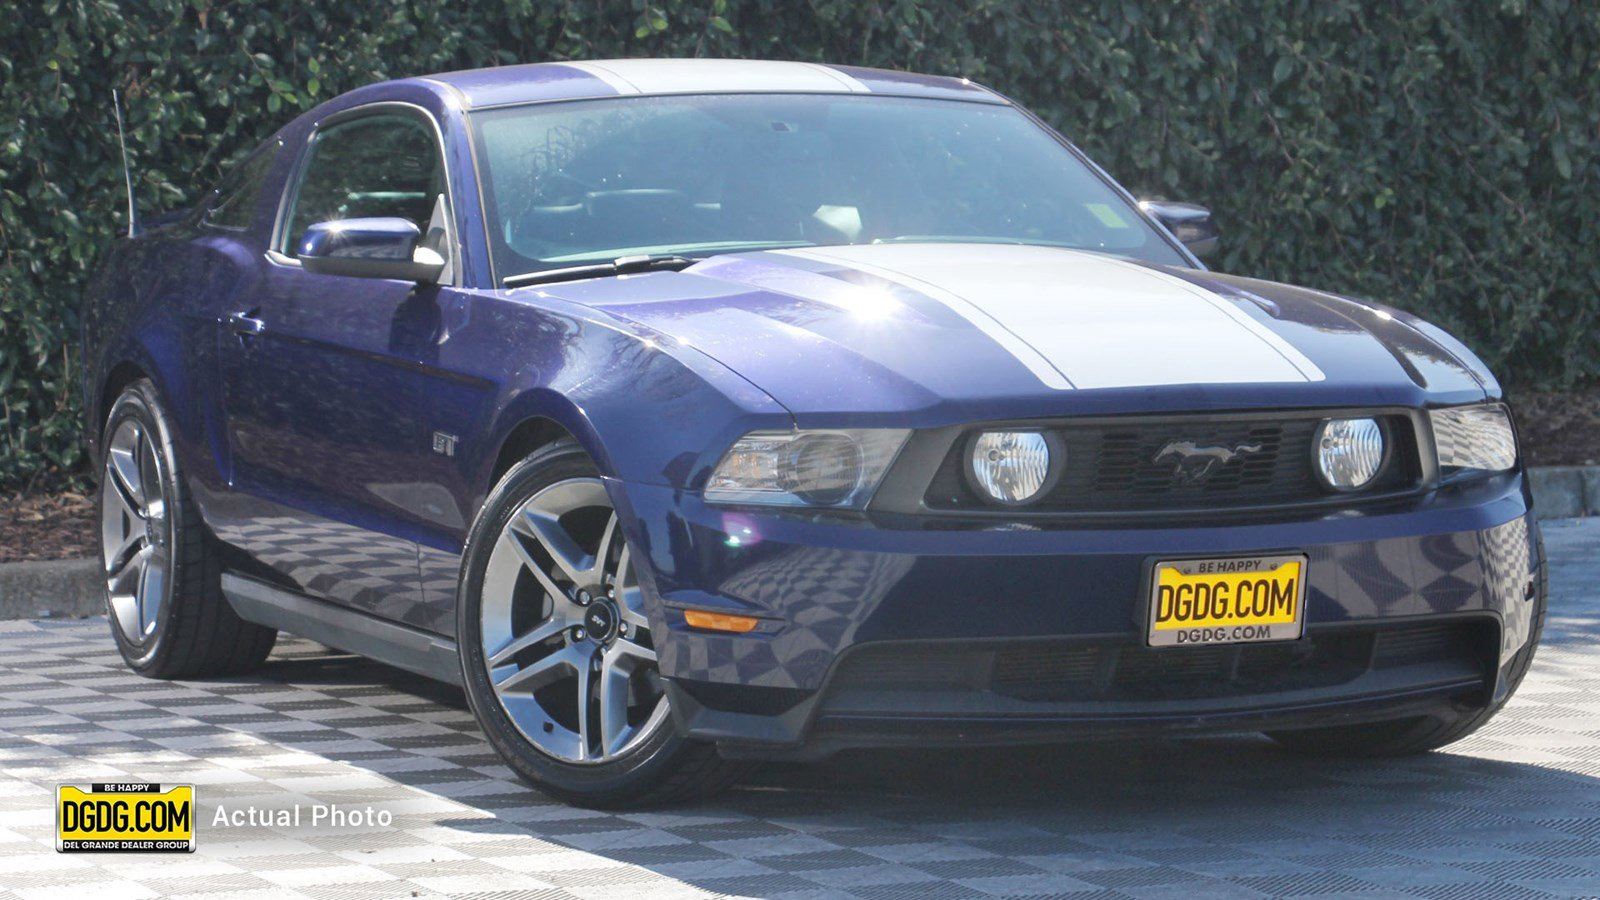 2010 Ford Mustang GT Premium image